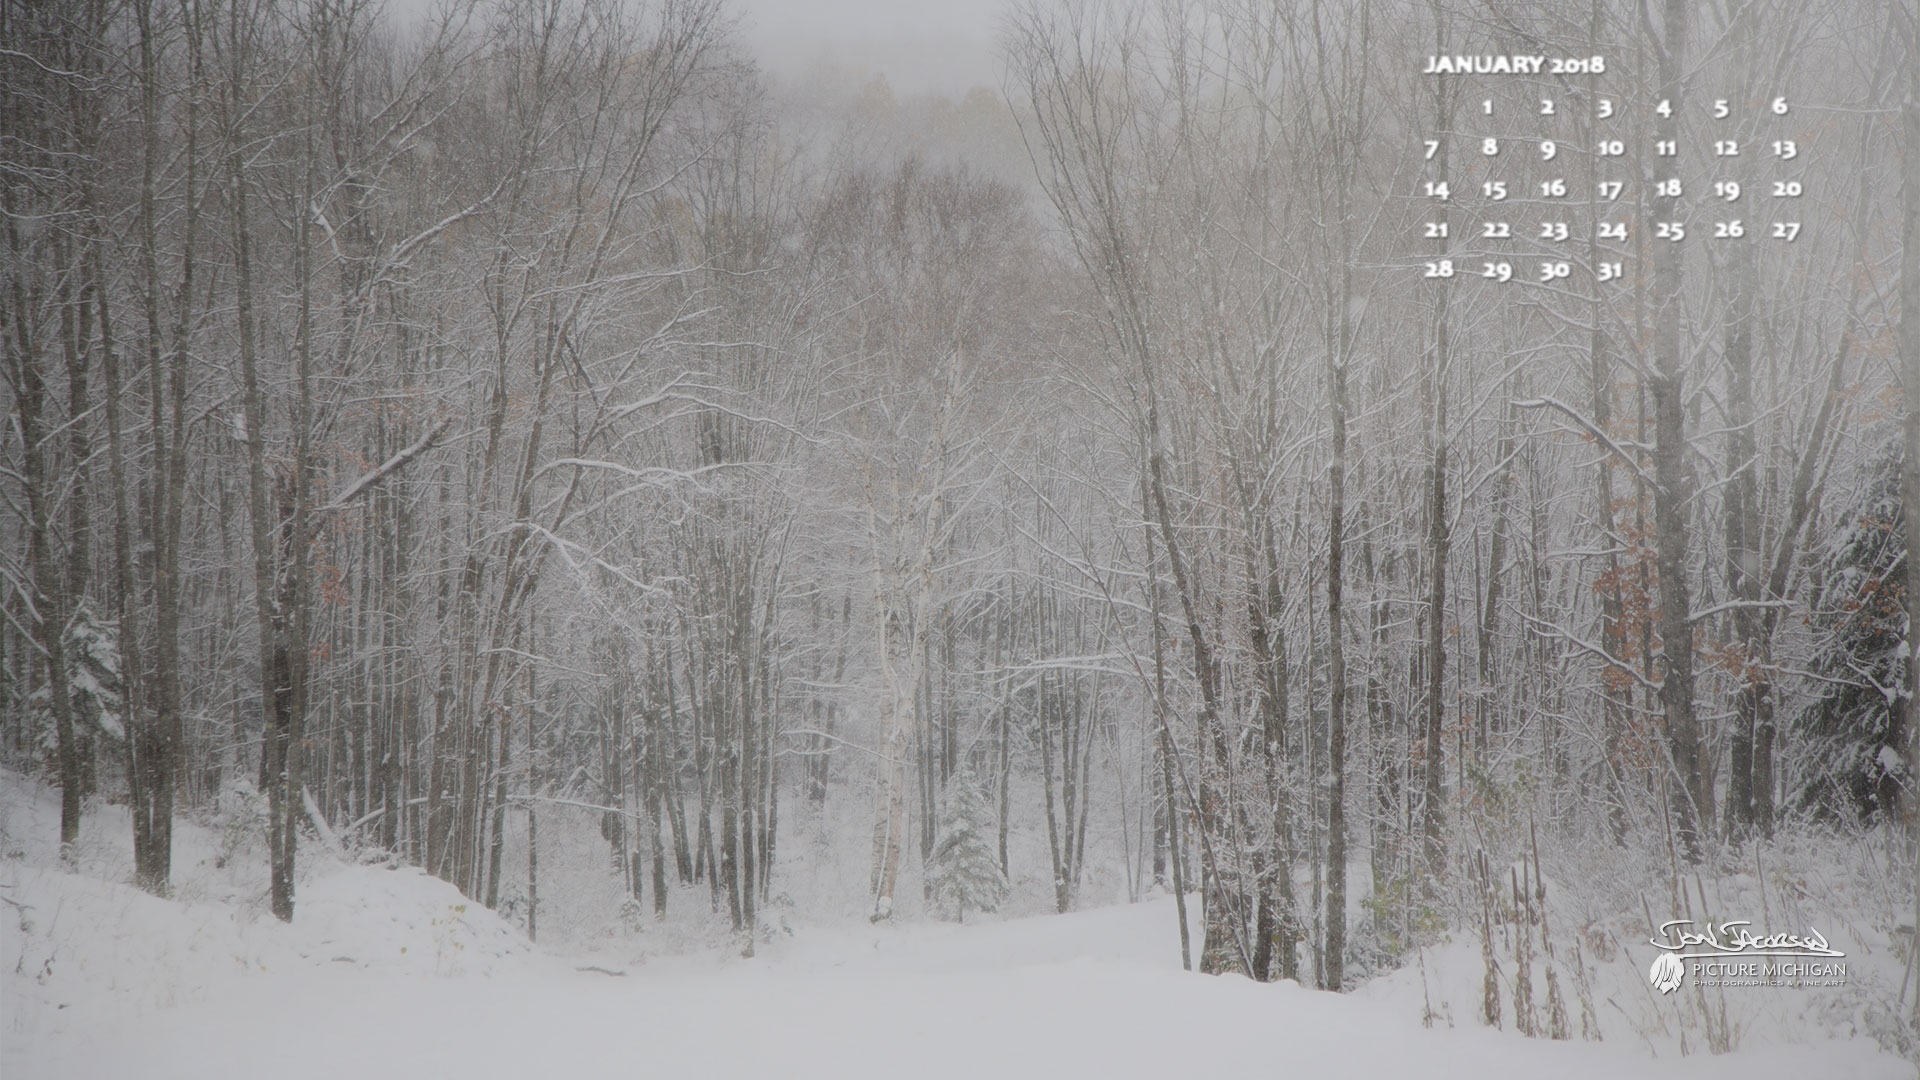 January 2018 Calendar Wallpapers 1920x1080